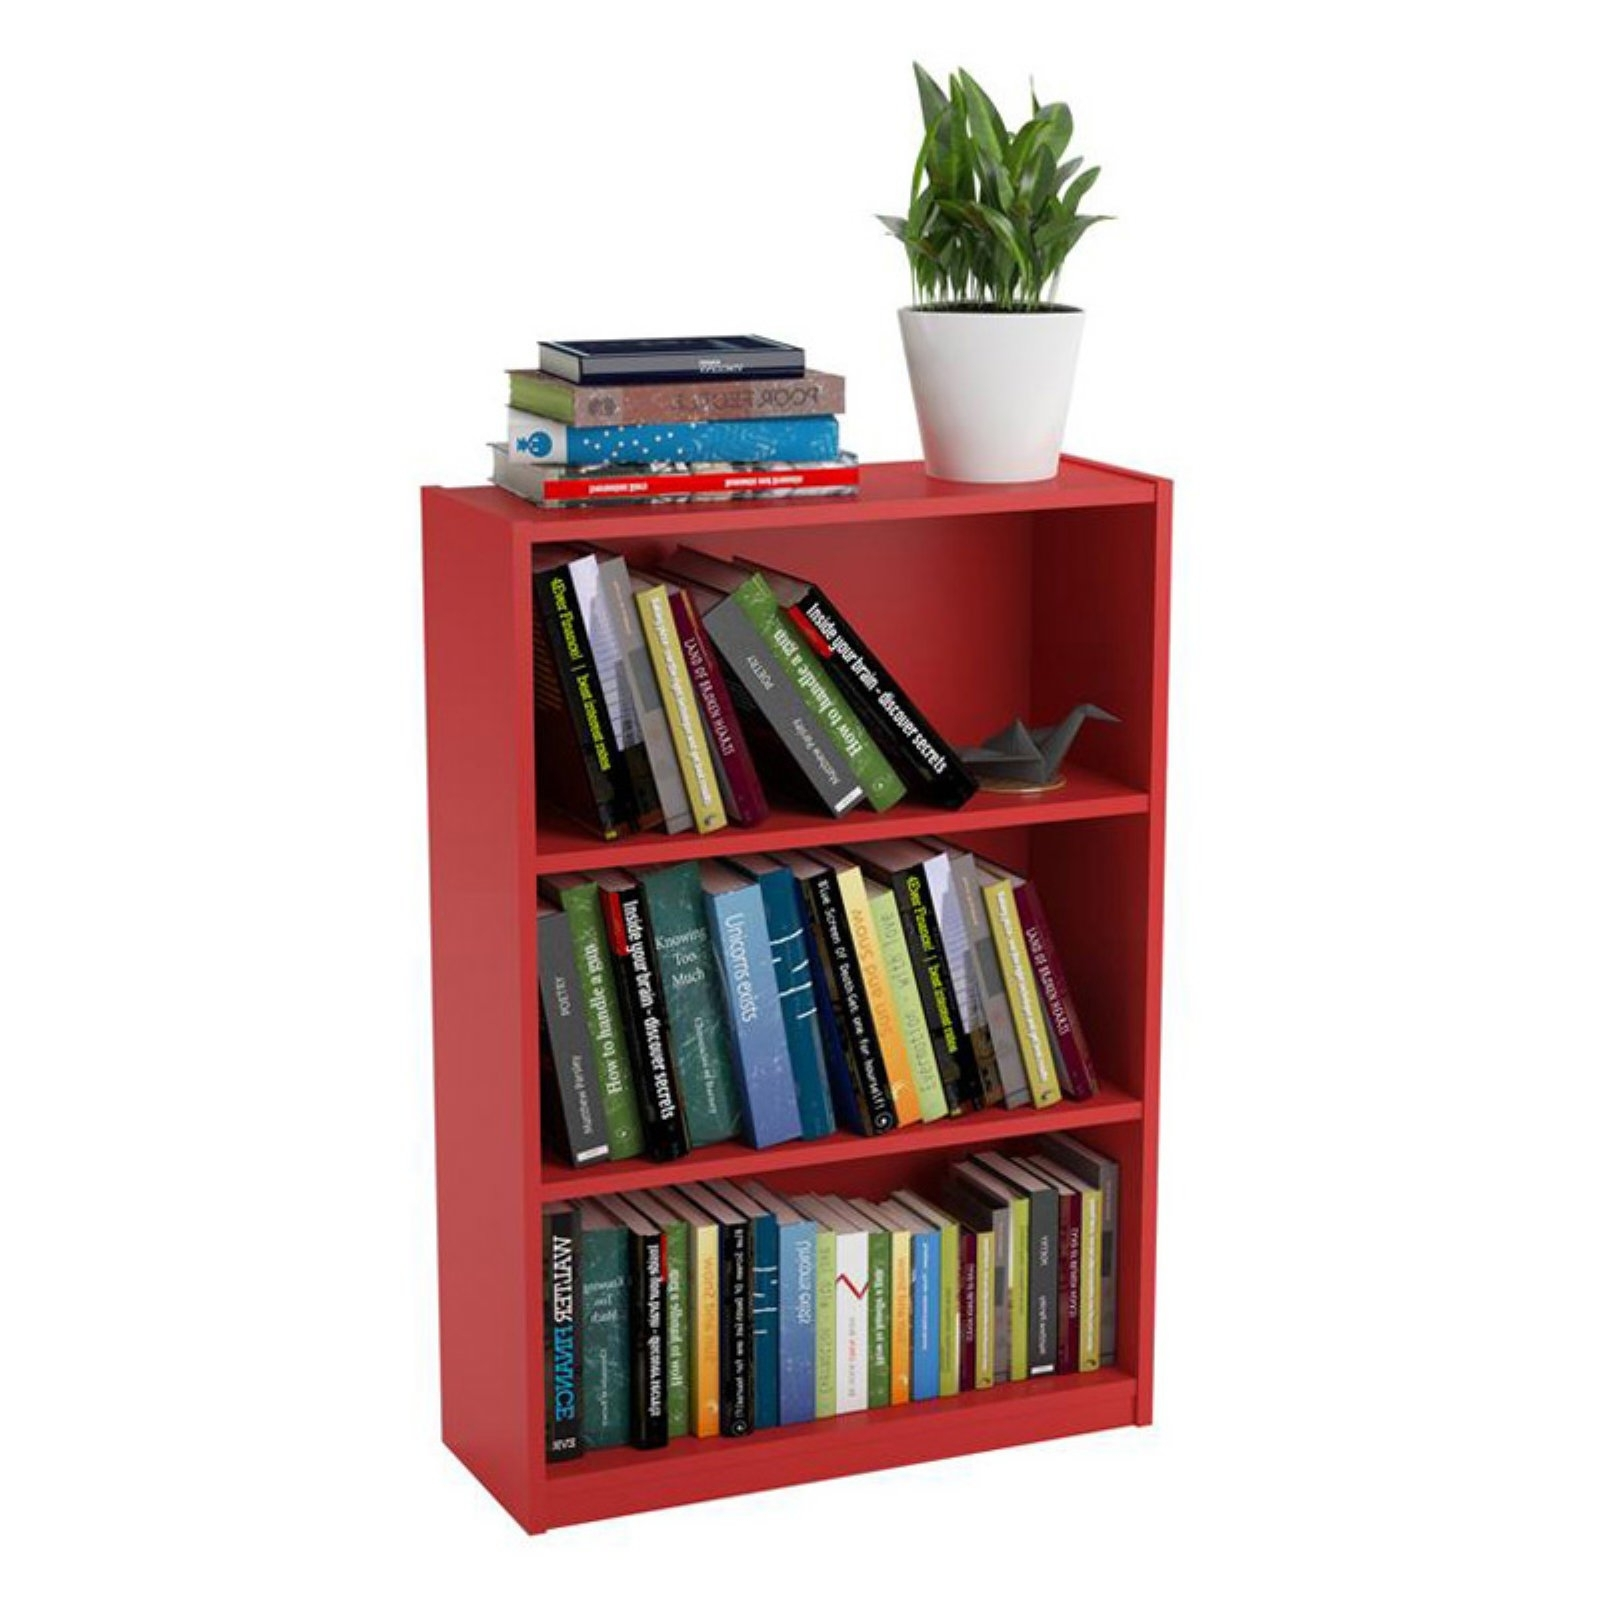 Ameriwood 3 Shelf Bookcase, Multiple Finishes – Walmart With Regard To Most Current Ameriwood 3 Shelf Bookcases (View 1 of 15)